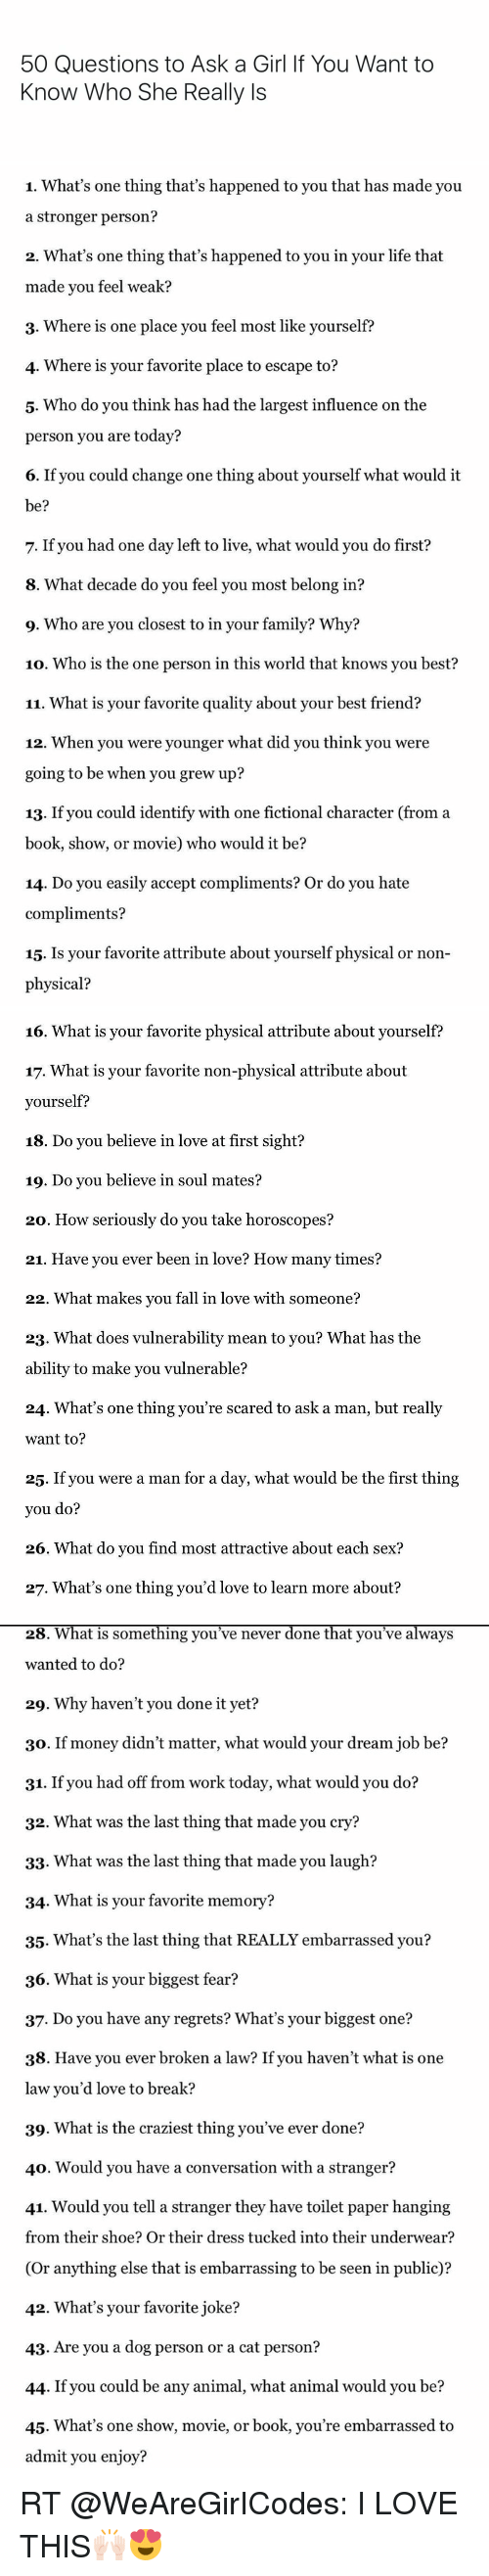 Best sexual questions to ask a girl